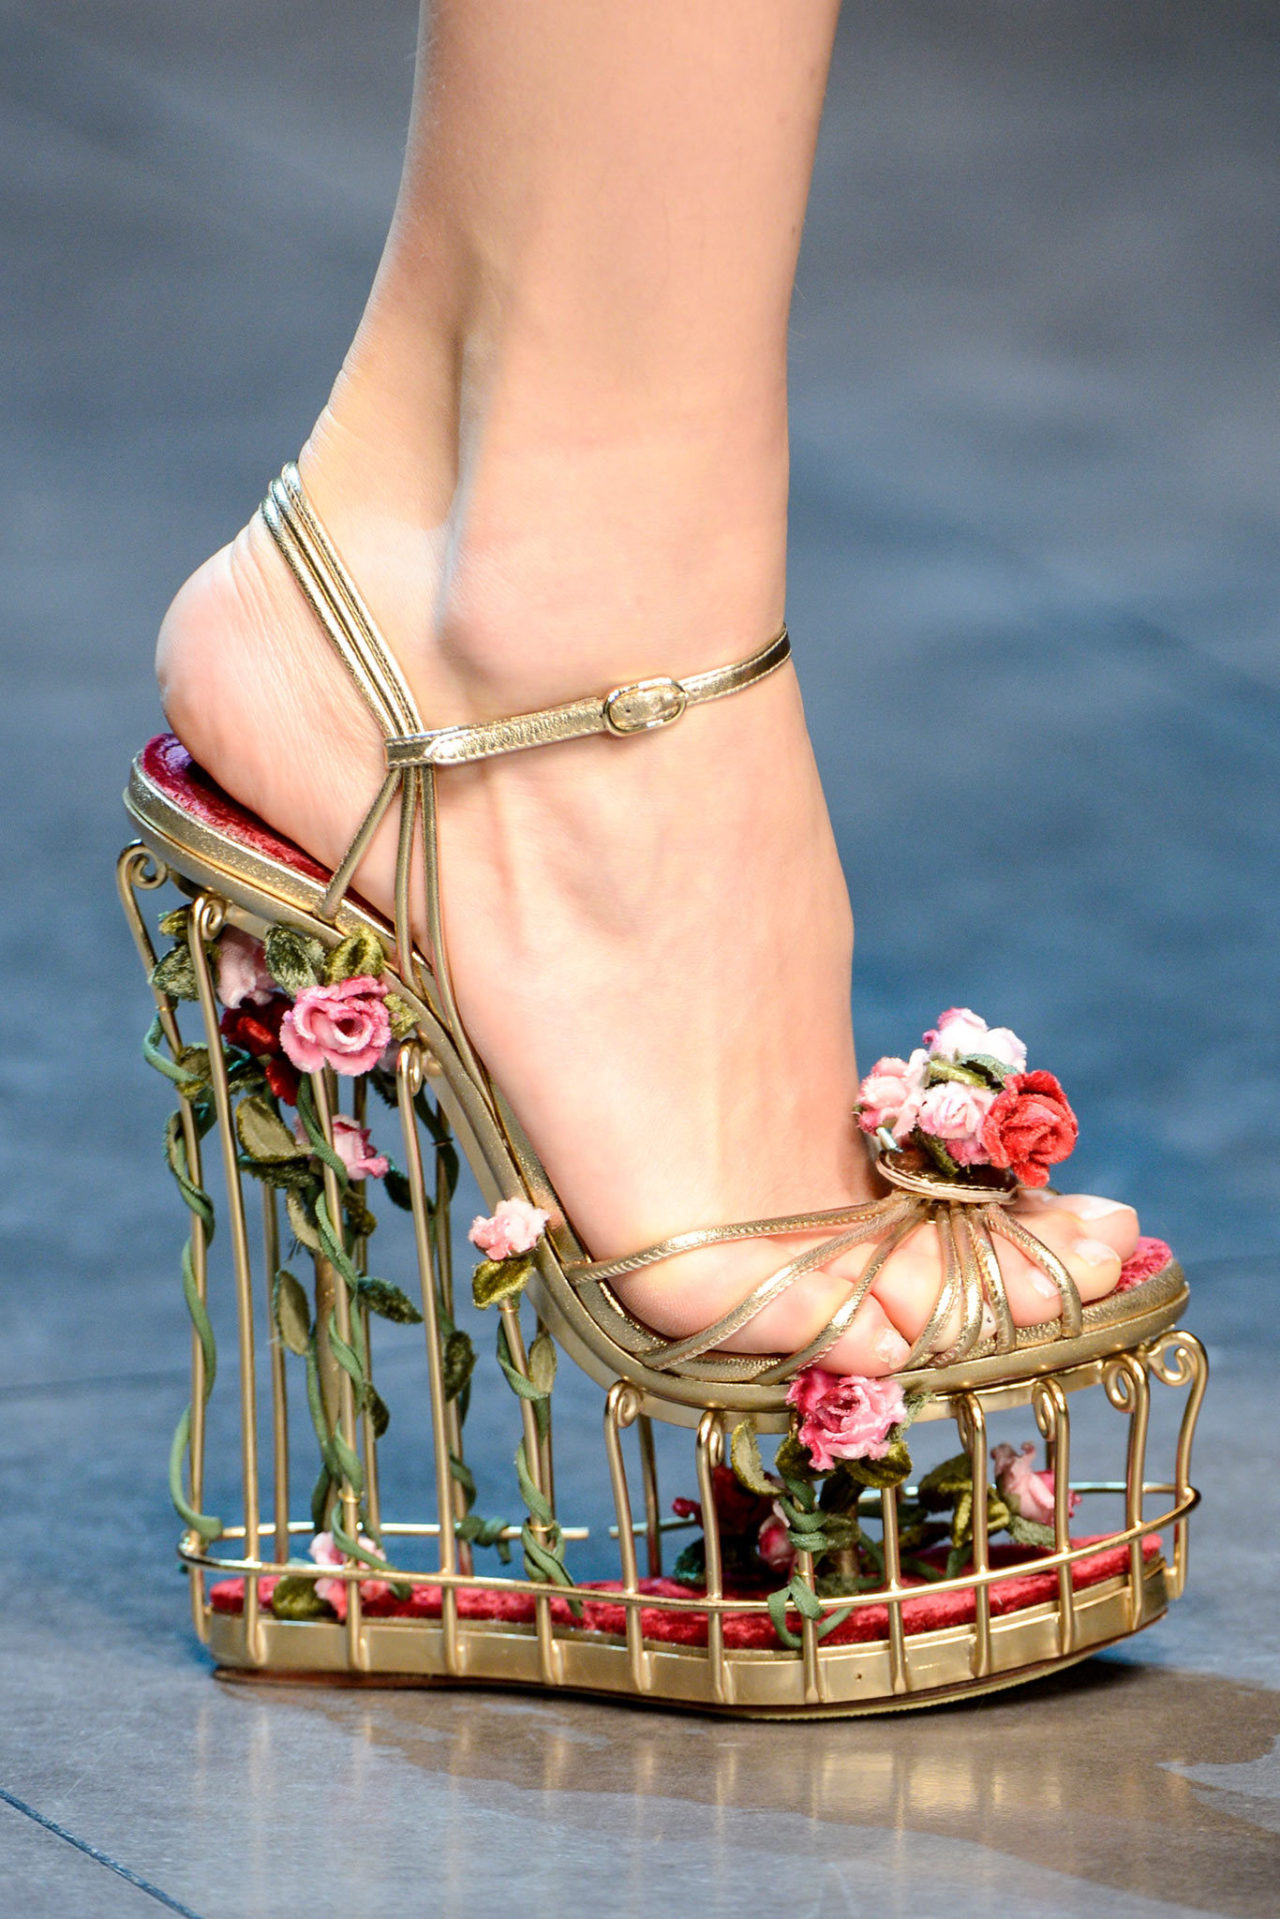 voguelovesme:  fashioninquality:  Shoe Porn at Dolce & Gabbana Fall Winter 2013 | MFW  OMFG THIS IS BEAUTIFUL!!!